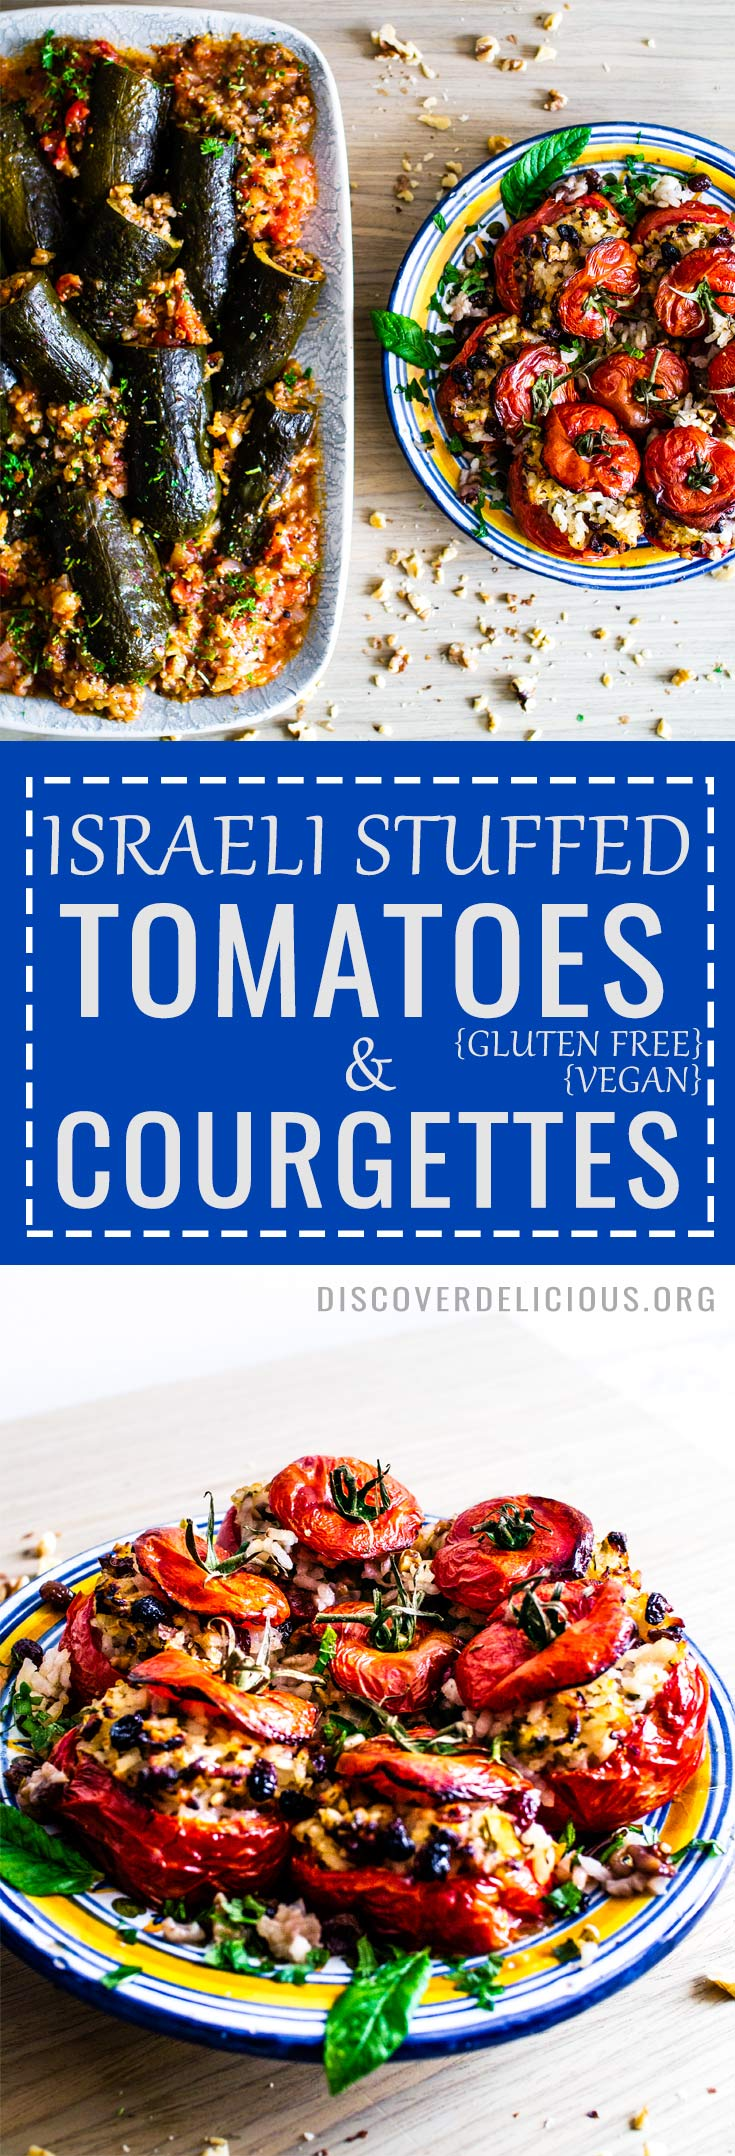 These Israeli stuffed vegetables are so delicious: the tomatoes are filled with a sweet-and-sour mix of rice, walnuts, raisins and herbs while the courgettes have (vegan) mince and warming spices surrounded by a yummy tomato sauce!  #vegan #glutenfree #zucchini #recipe #israeli #healthy #vegetarian